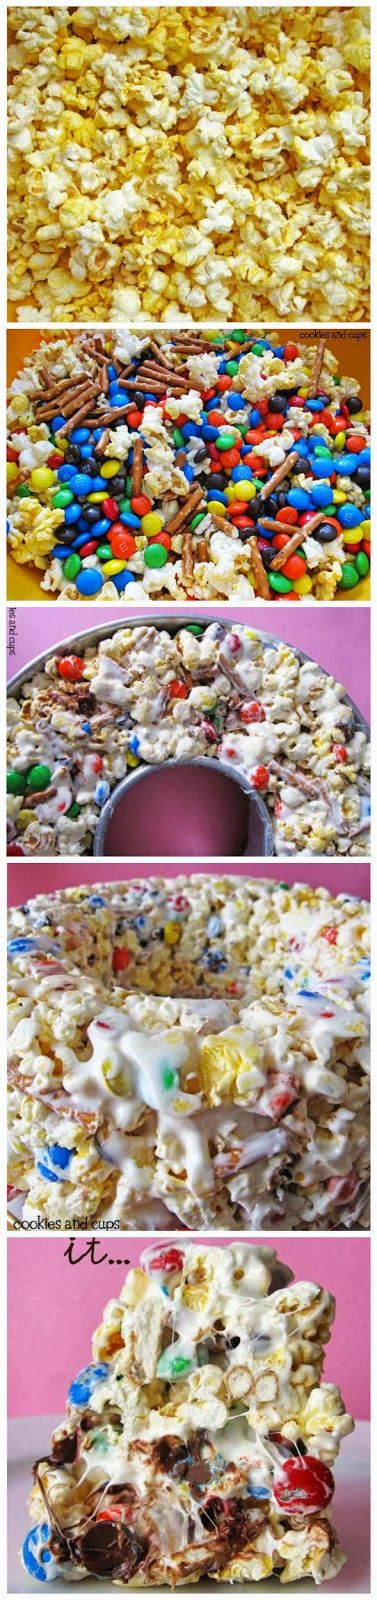 Popcorn Cake - I am nearly brought to tears by the sheer amazing-ness of this addictive looking cake! LORD HELP ME! ;)